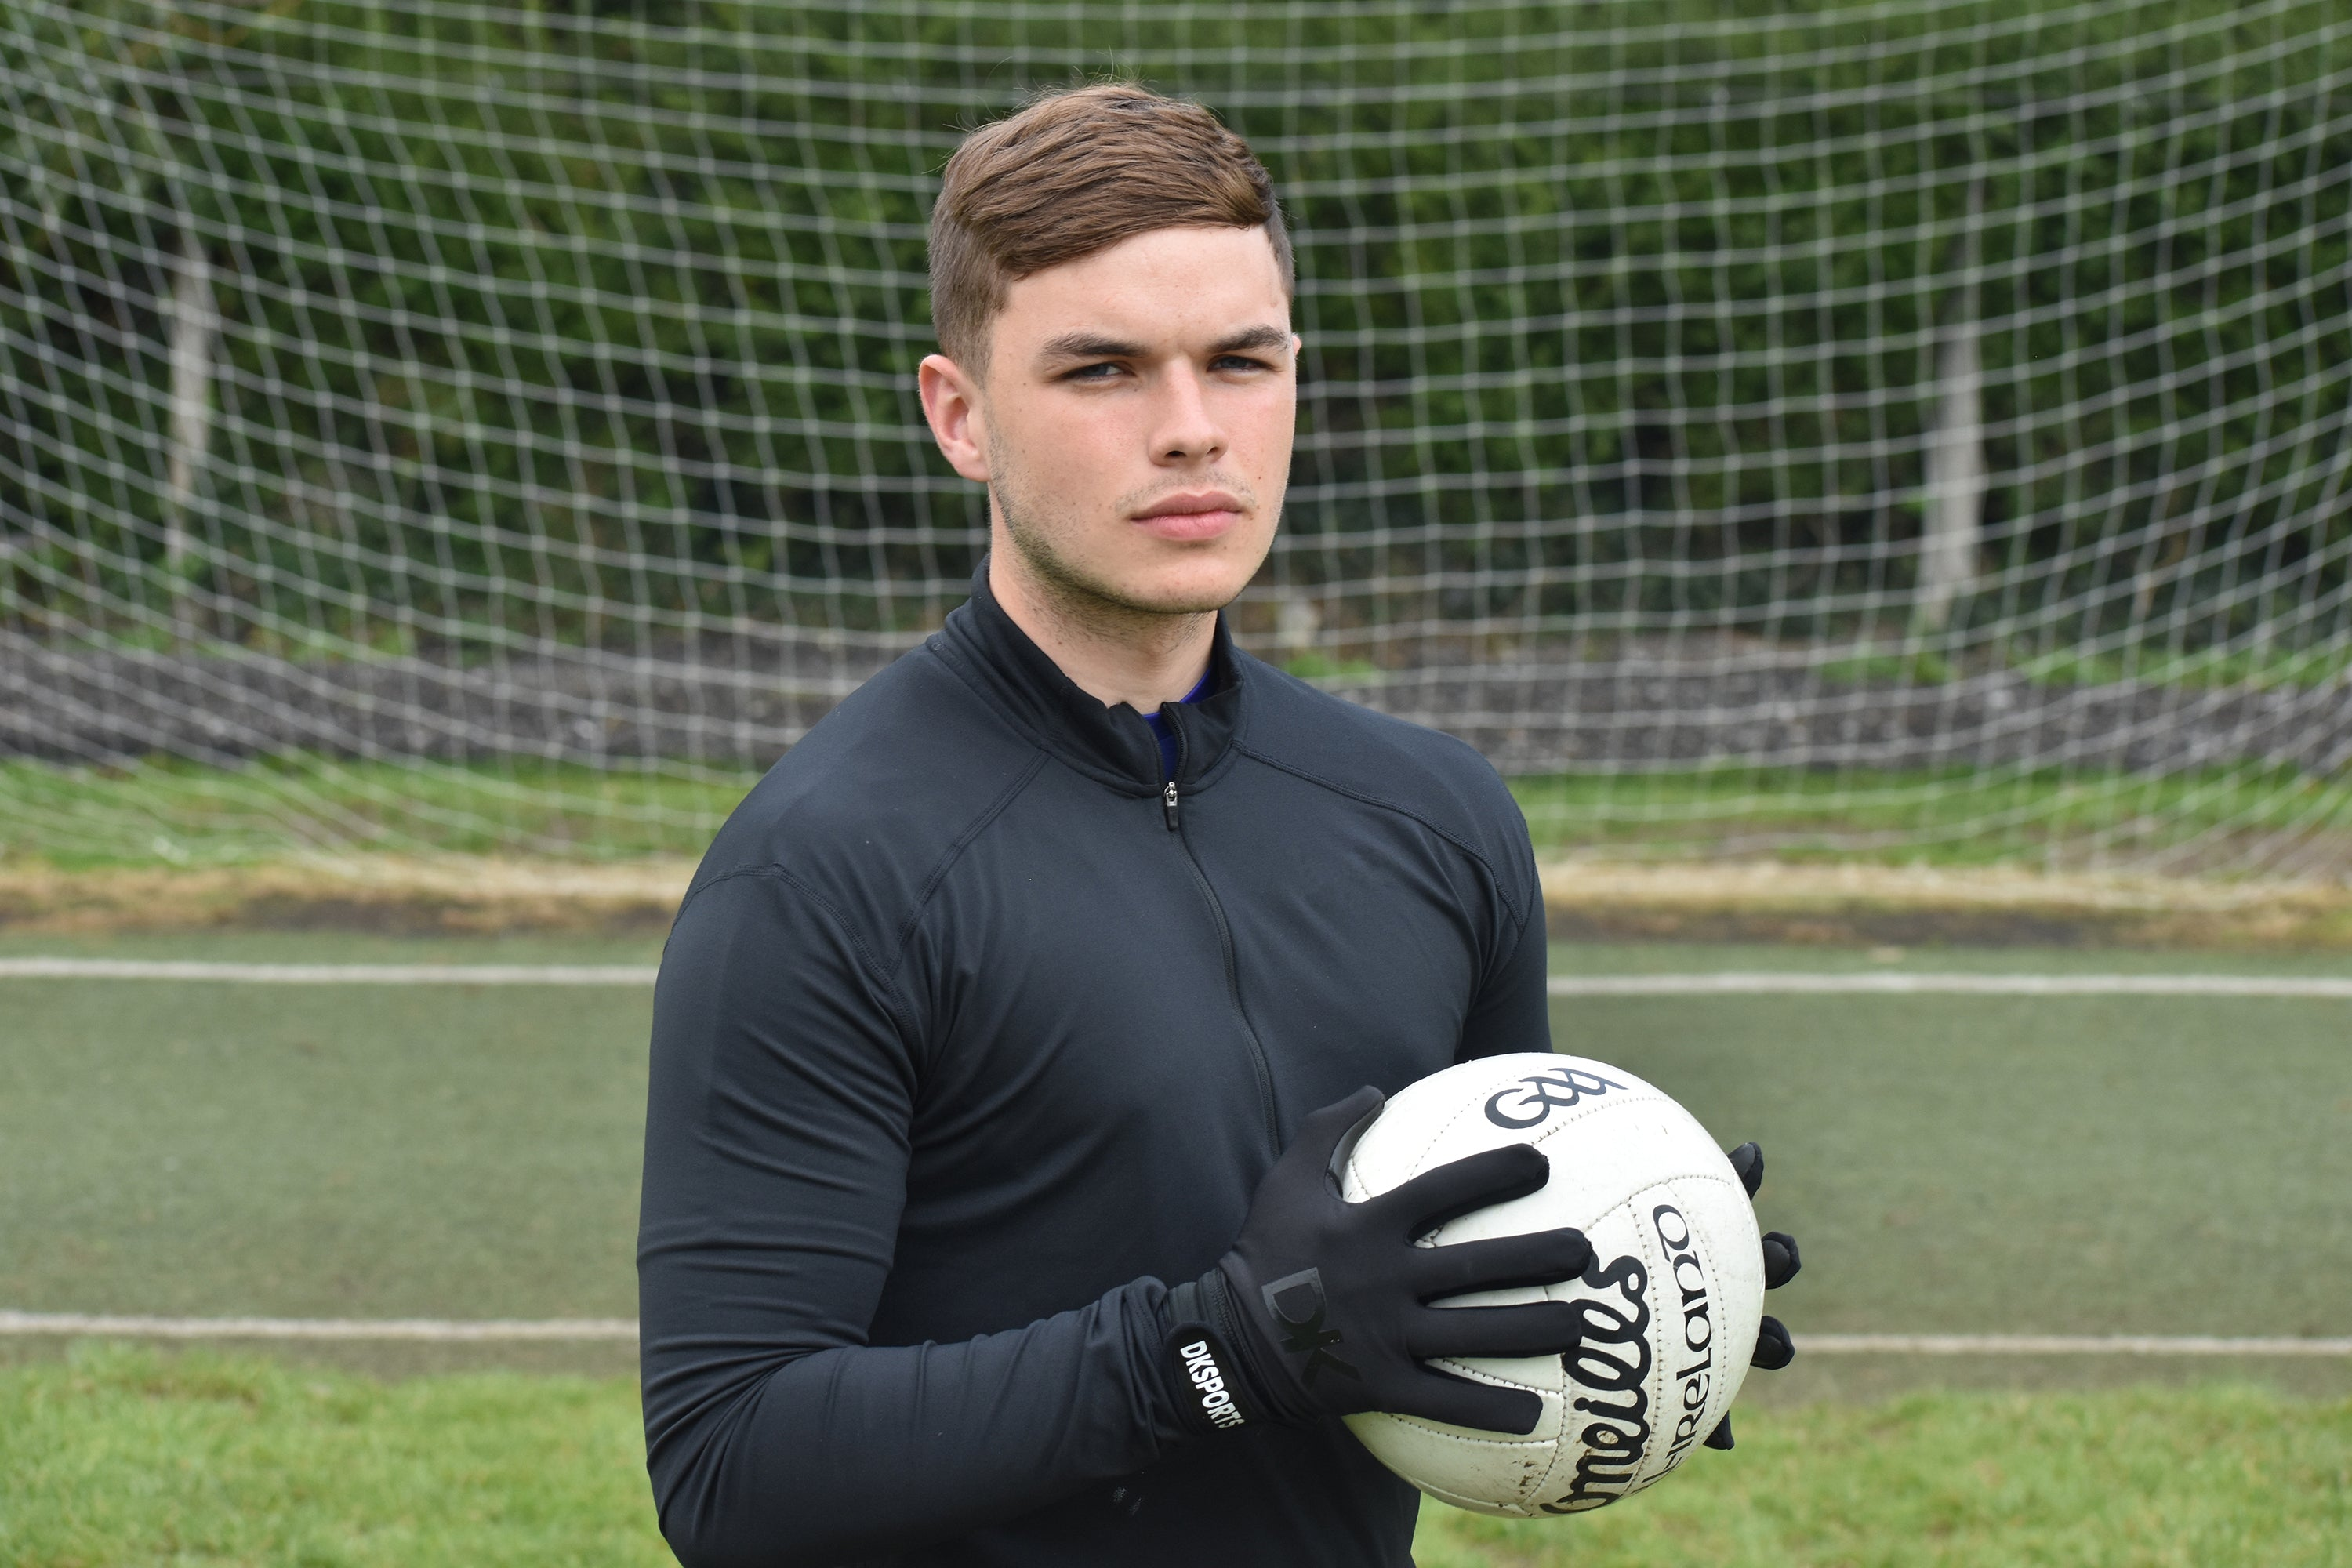 The man behind the gloves - Daragh Kelly